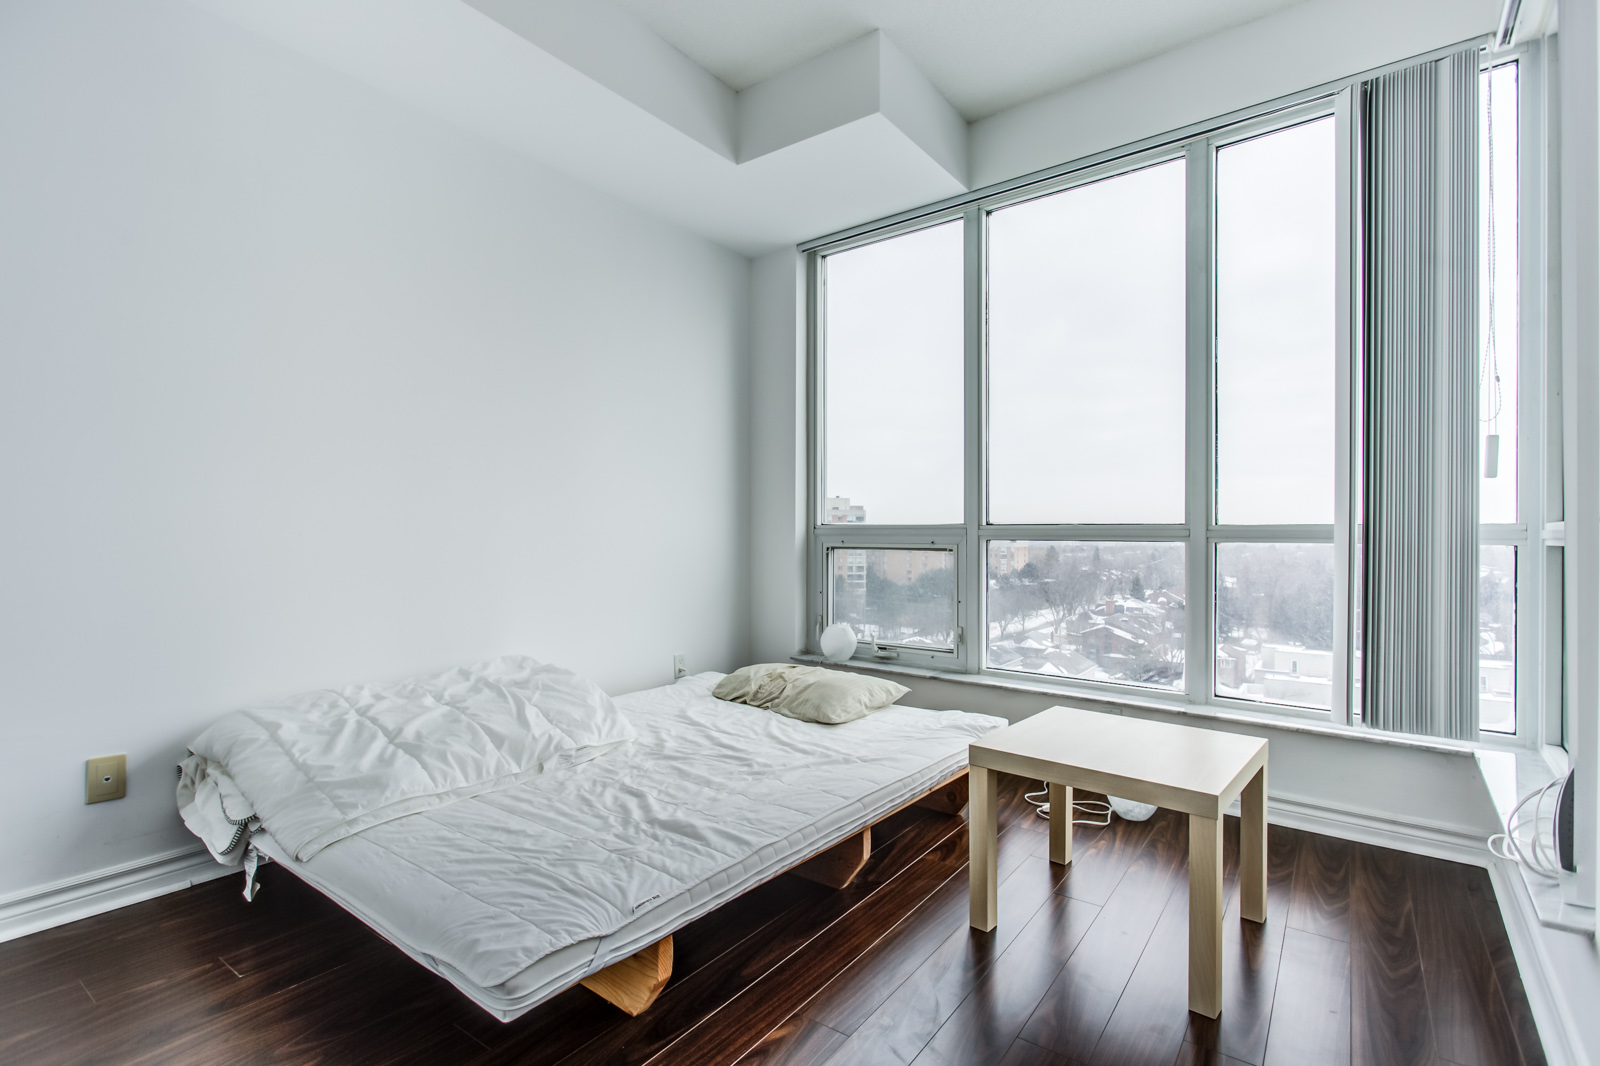 Another angle of master bedroom and windows.